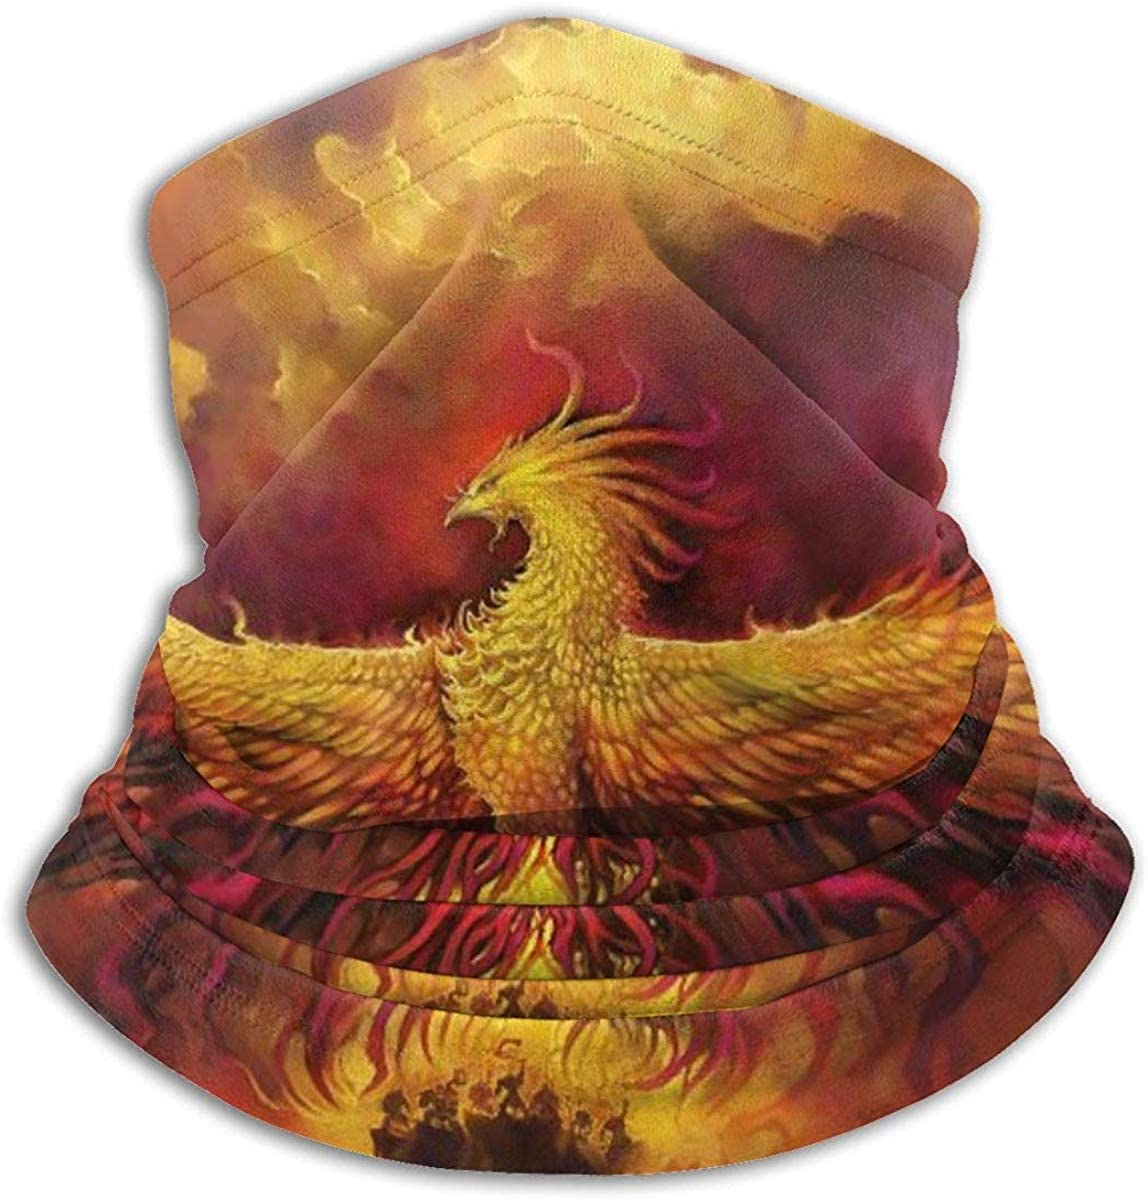 Fiery Phoenix Microfiber Neck Warmer Balaclavas Soft Fleece Headwear Face Scarf Mask For Winter